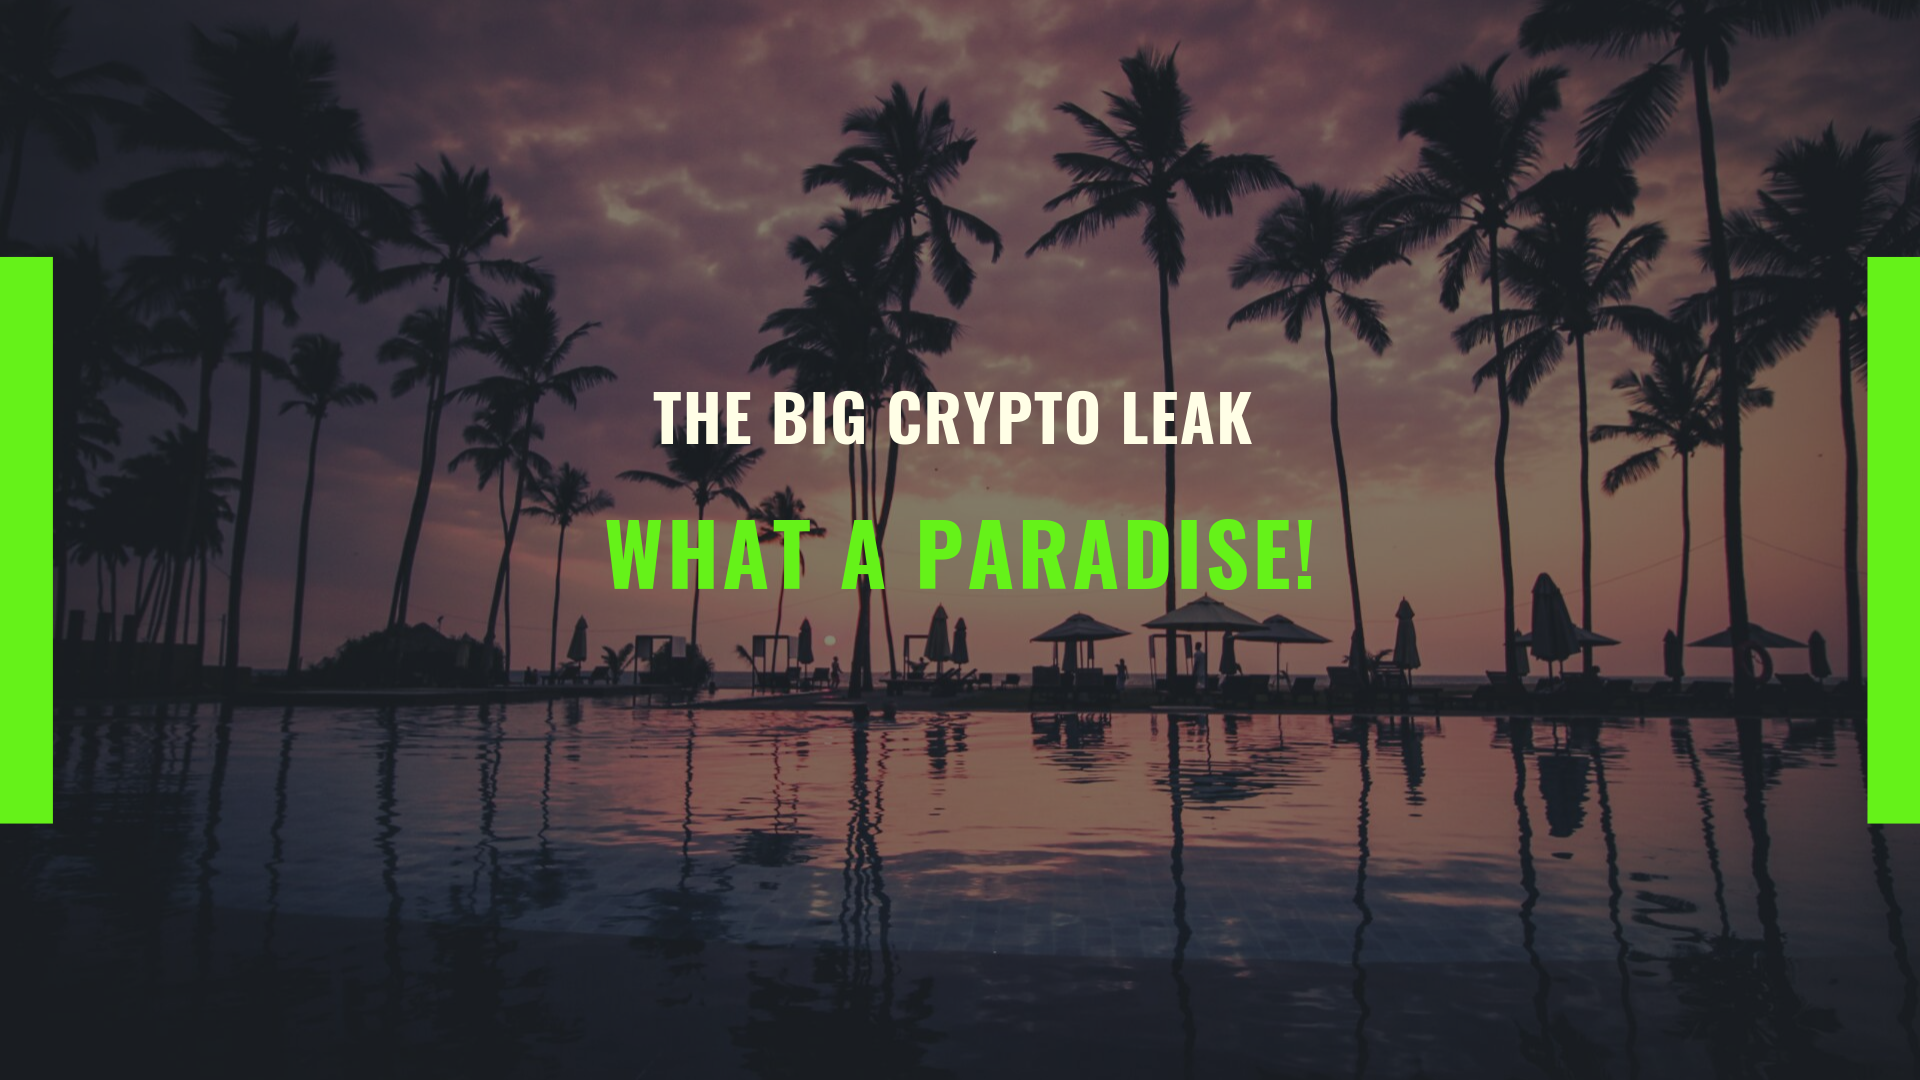 The Big Crypto Leak: What a Paradise!